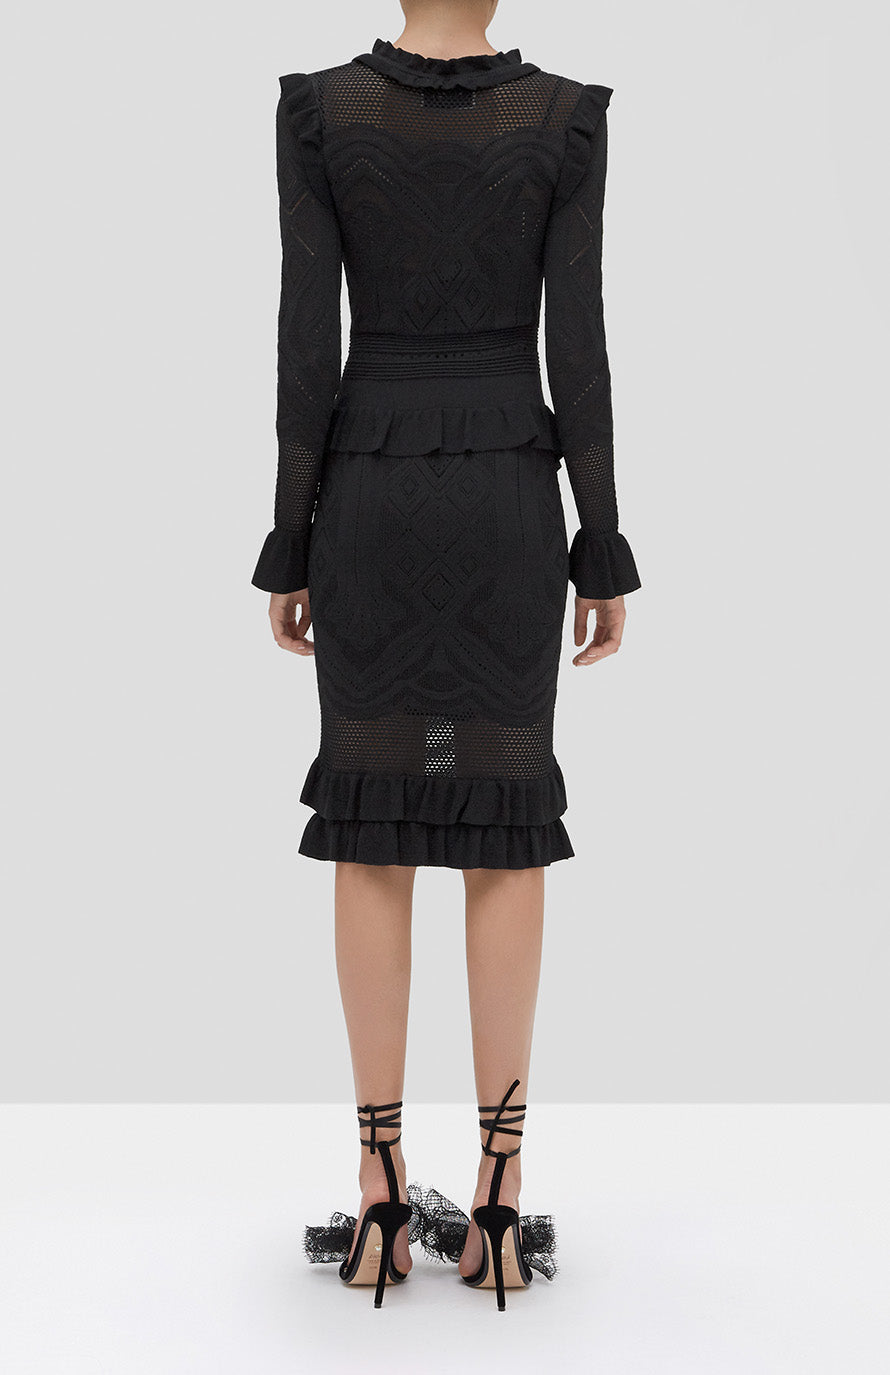 Alexis Sivan Dress in Black from our Holiday 2019 Ready to Wear Collection - Rear View